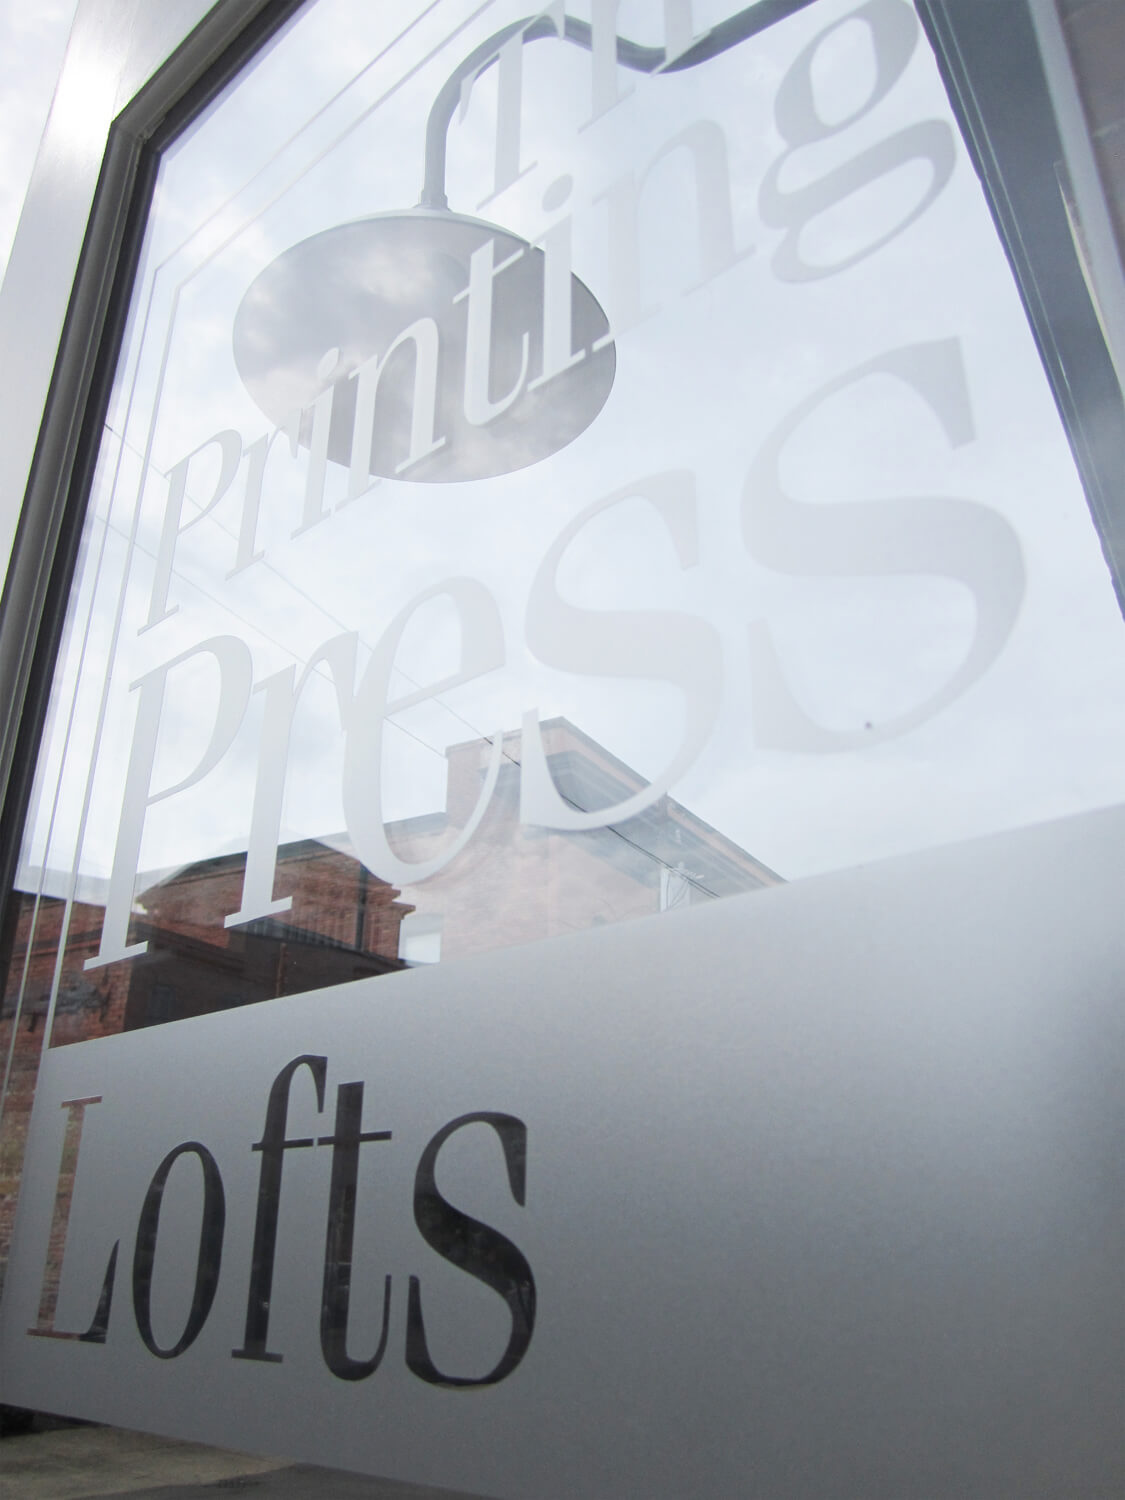 Printing Press Lofts Designed by Foshee Architecture - Sign on Front Door